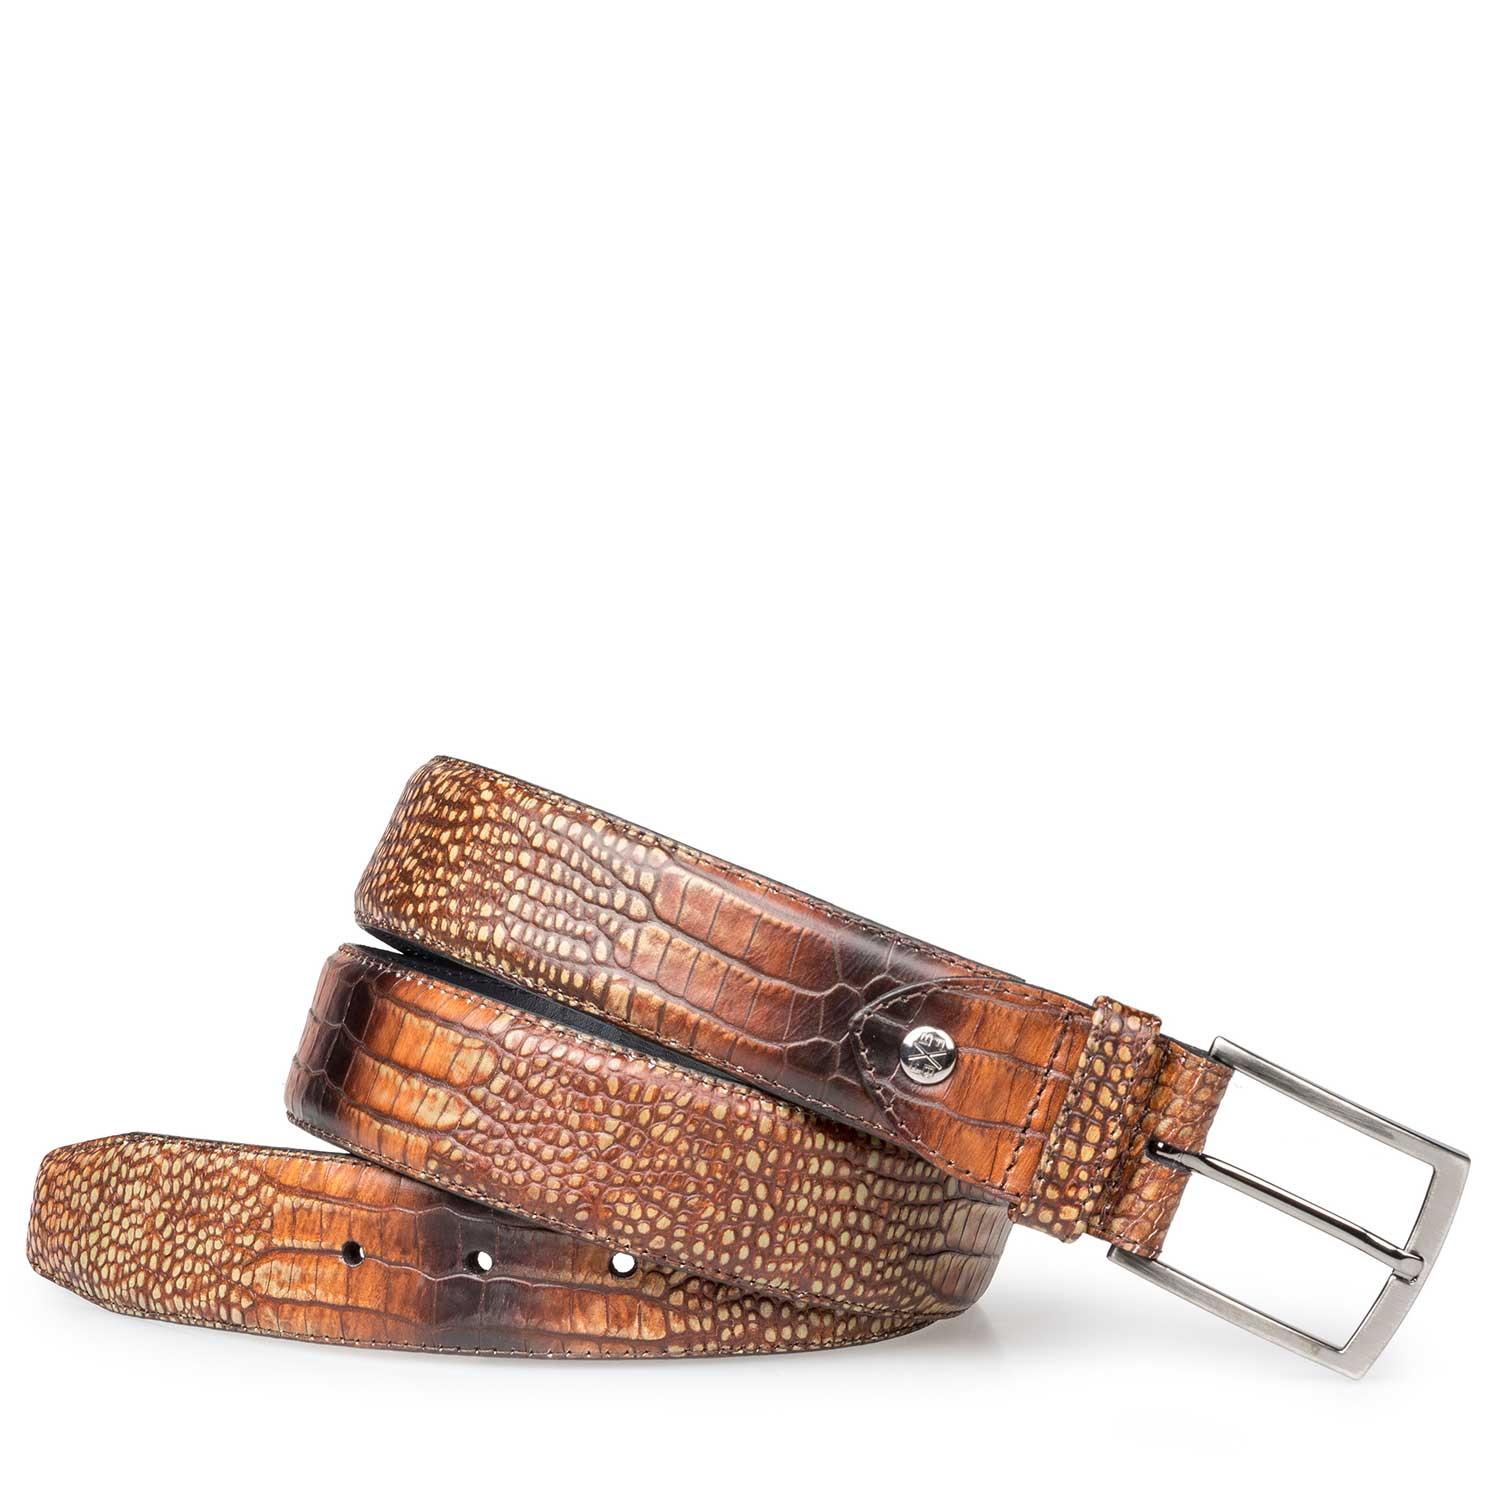 75190/47 - Cognac-coloured calf leather belt with croco print